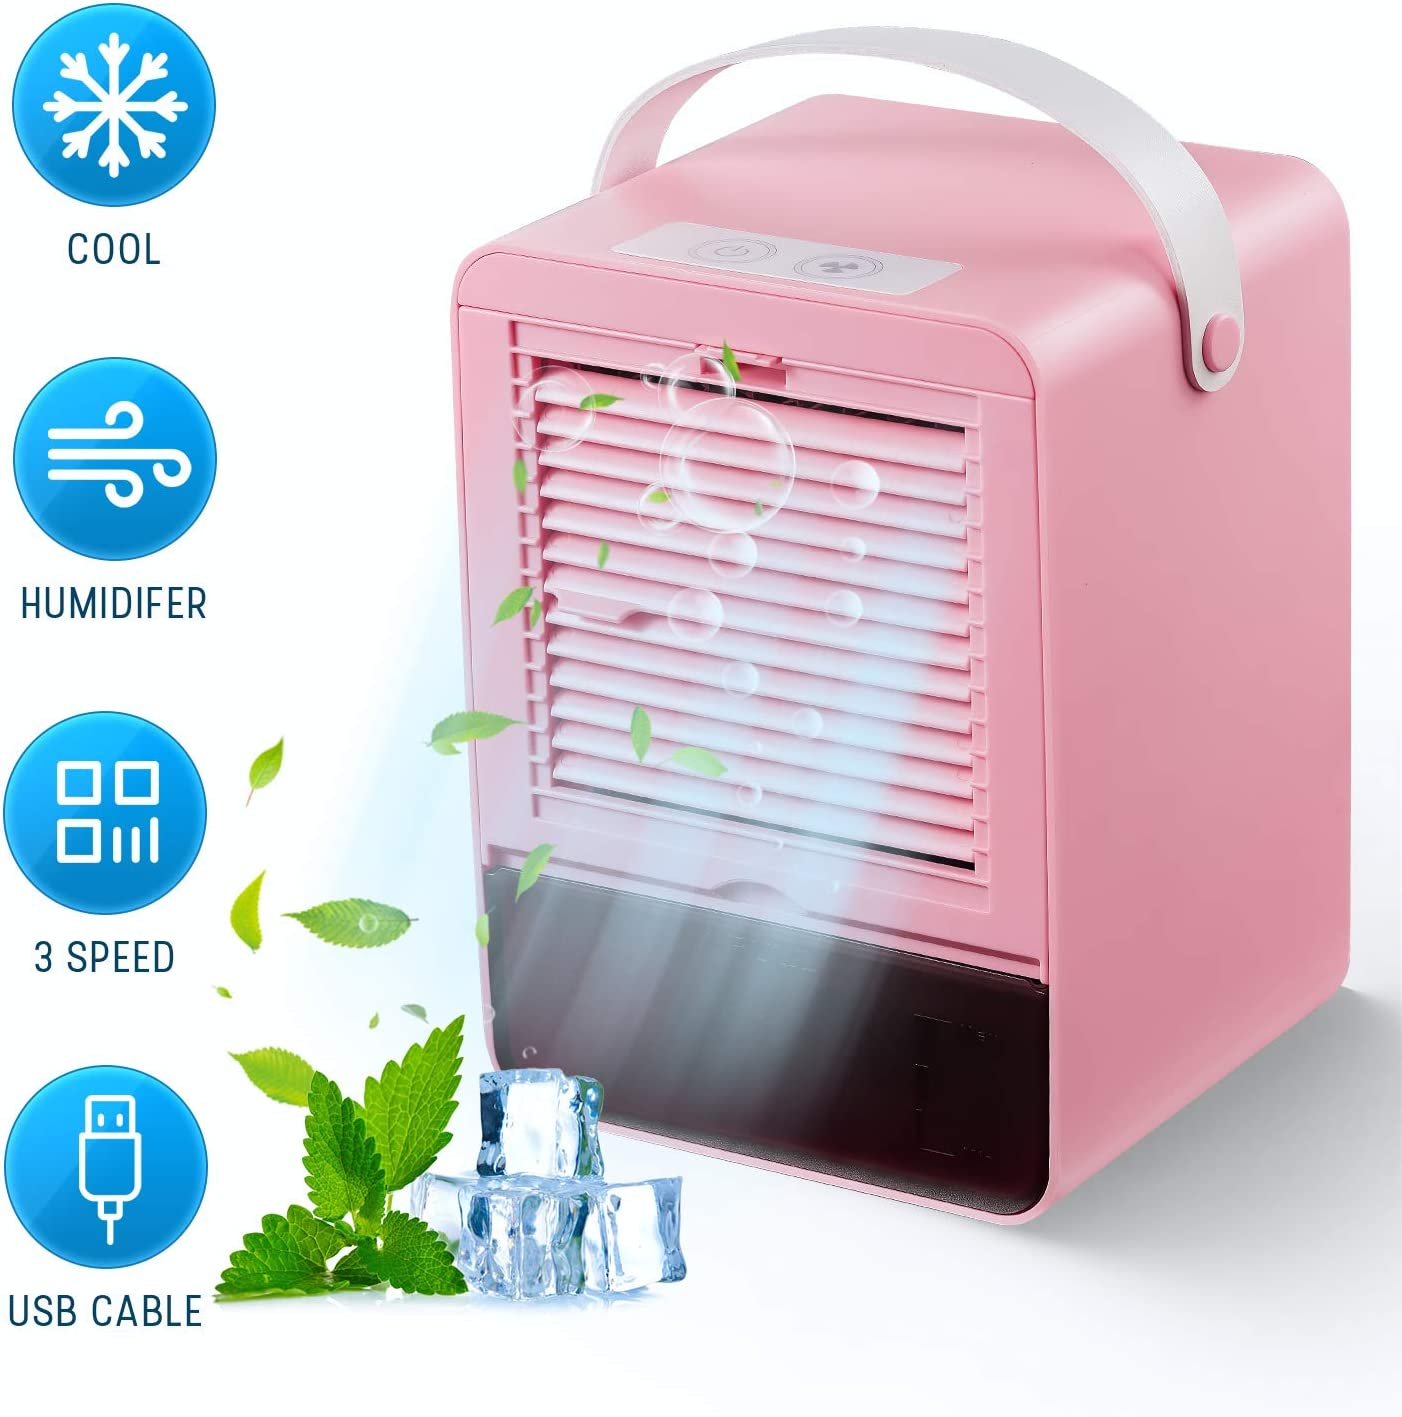 JIMACRO Portable Air Cooler, Small Air Conditioner Cooler and Humidifier, Purifier and Aroma Diffuser, 3 Fan Speeds, Air Cooling Fan for Home Office